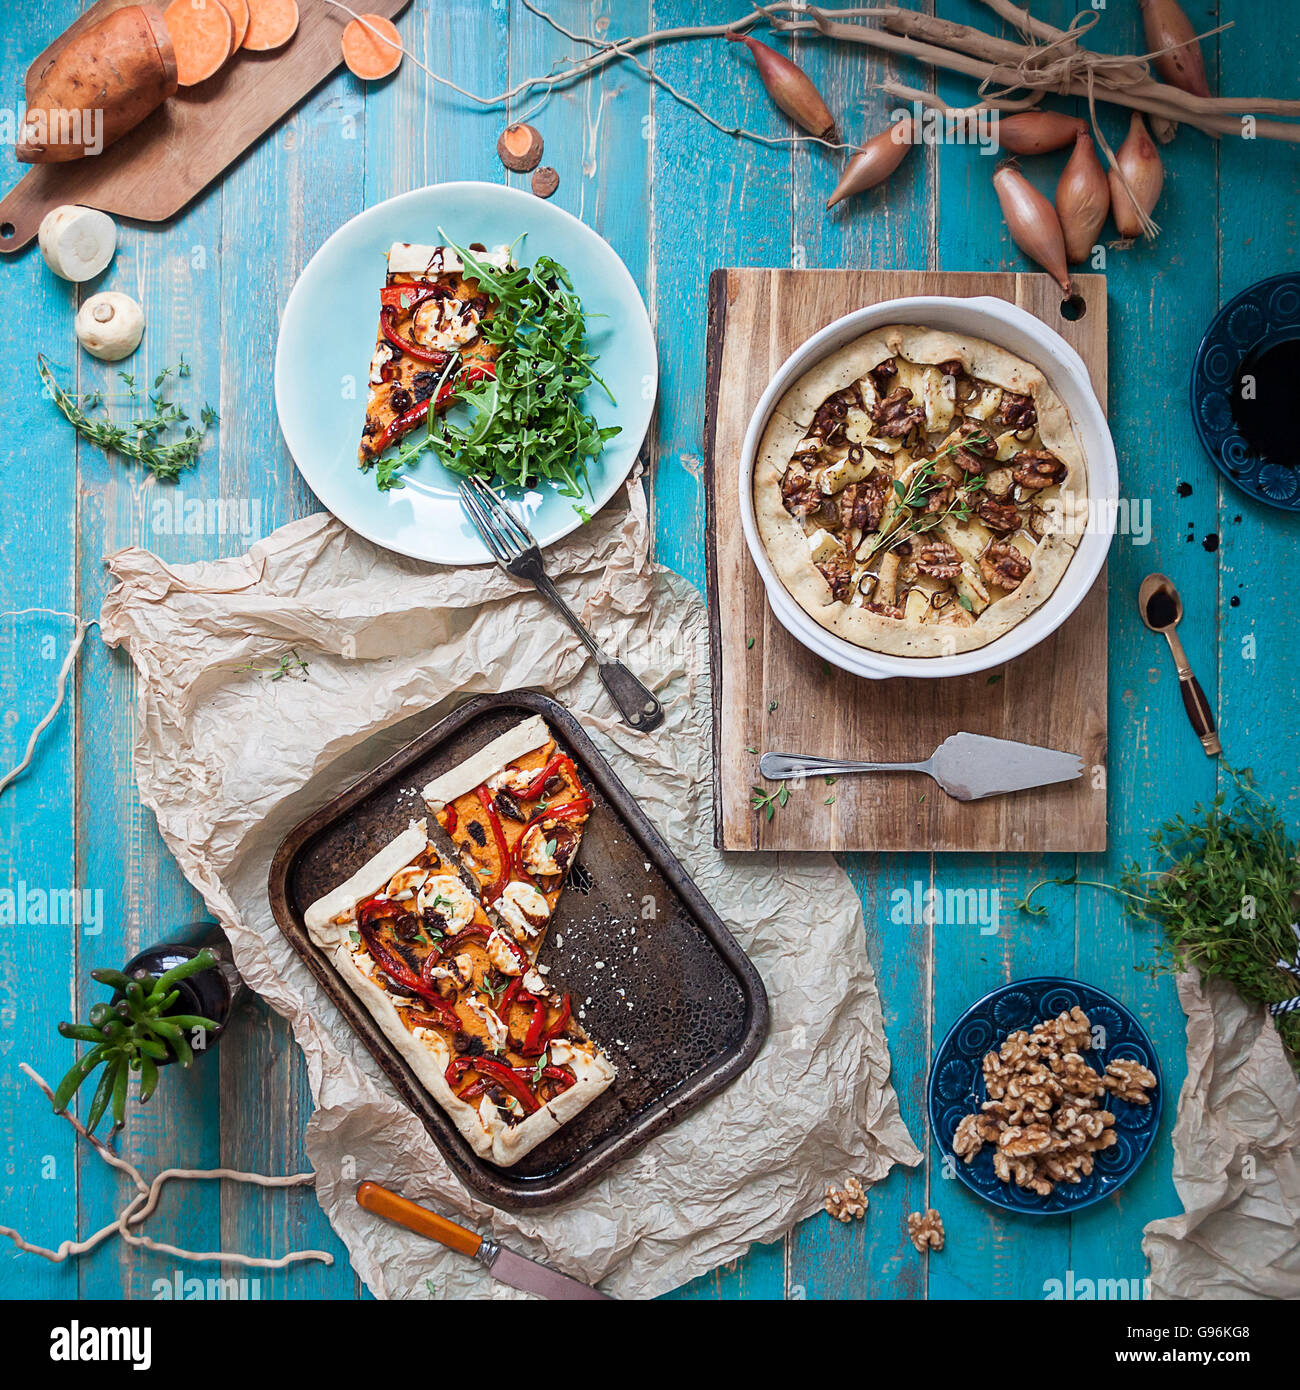 Table-top floating view of savory vegetarian tarts and various ingredients - Stock Image